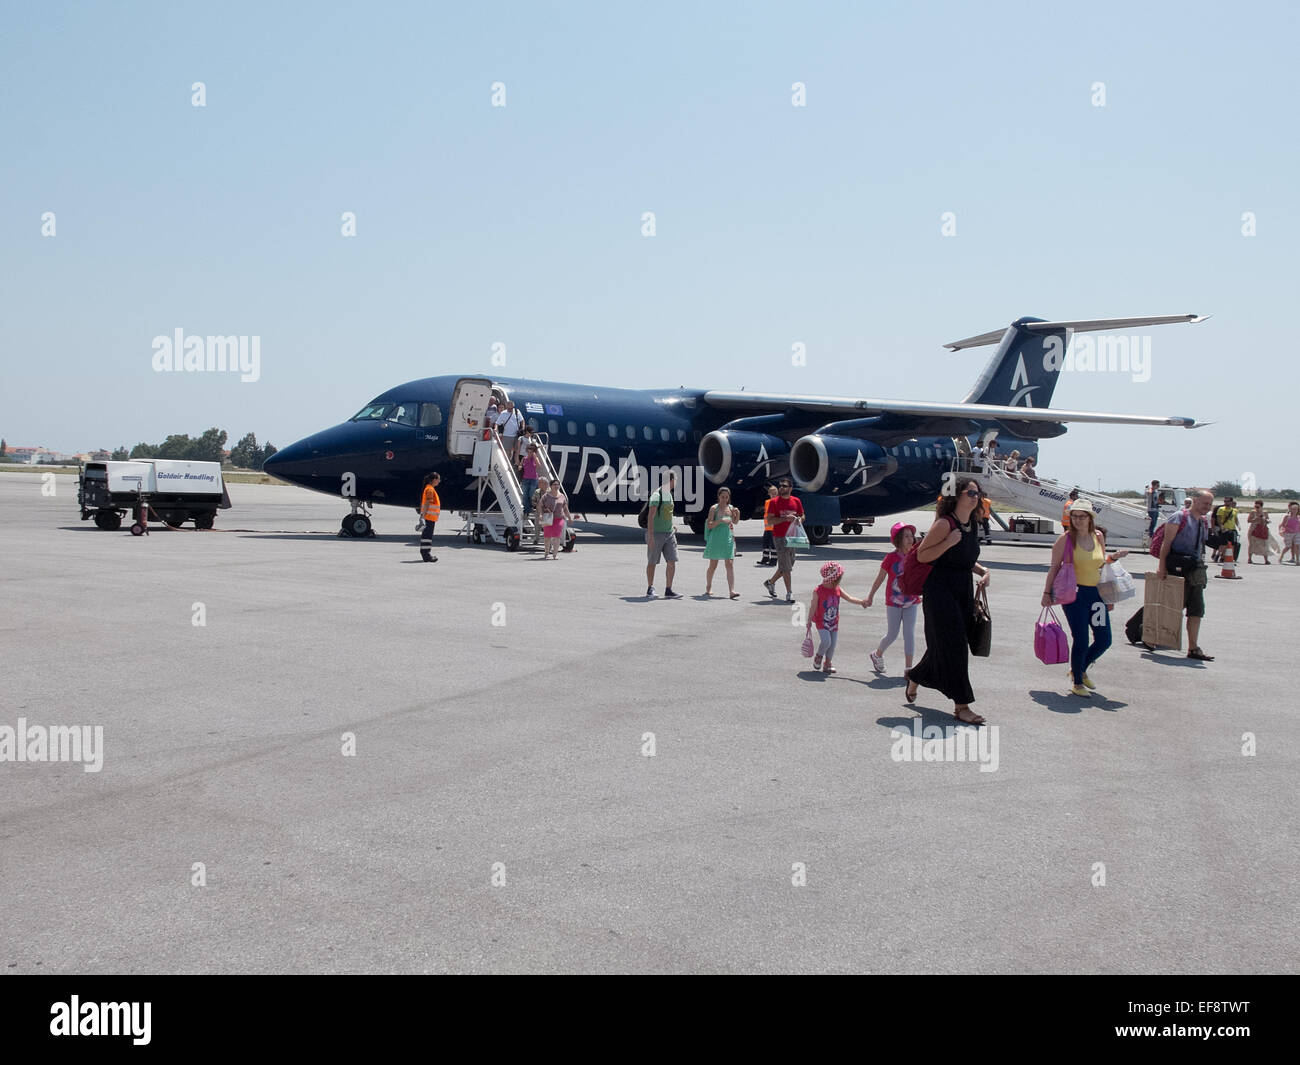 An Astra Airlines Avro RJ in Samos International Airport, Greece - Stock Image